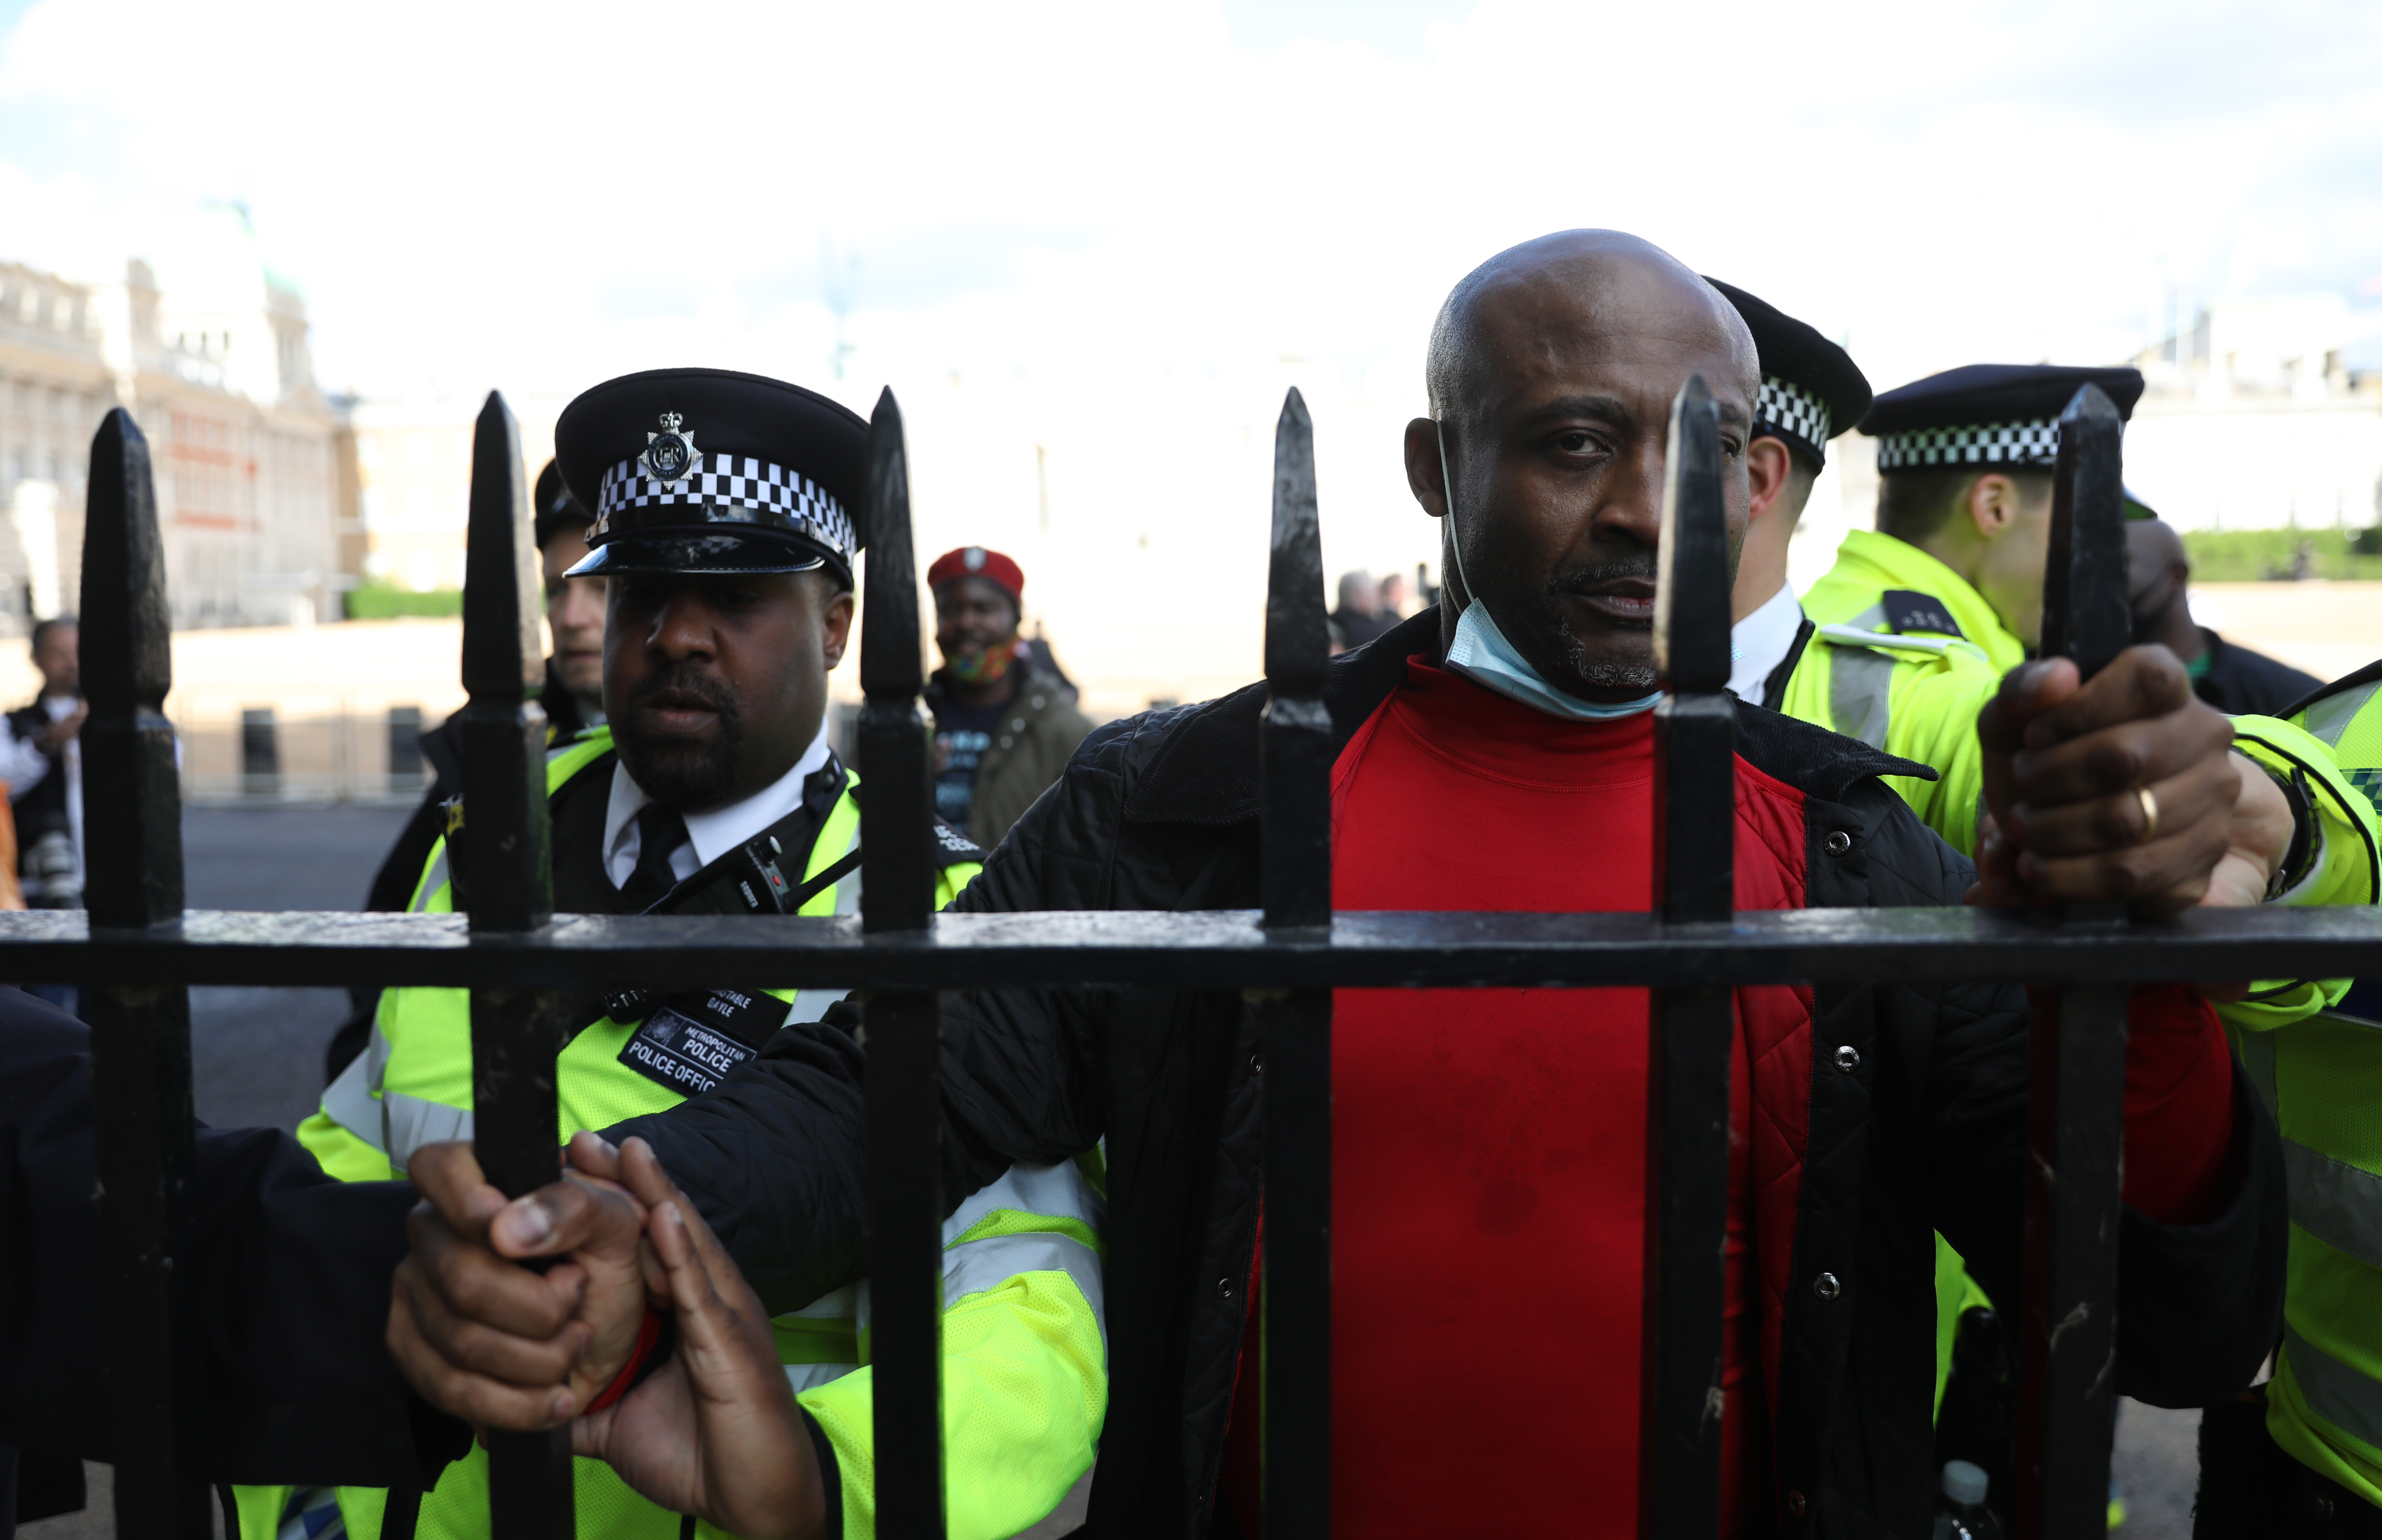 Police restrain a demonstrator who ran after Emmanuel Macron's car convoy as a protest against French interference in Cameroon domestic affairs. The French president was attending an official event with British Prime Minister Boris Johnson during his visit to the UK to mark the 80th anniversary of French Resistance leader Charles de Gaulle's wartime broadcast. Picture date: Thursday June 18, 2020.